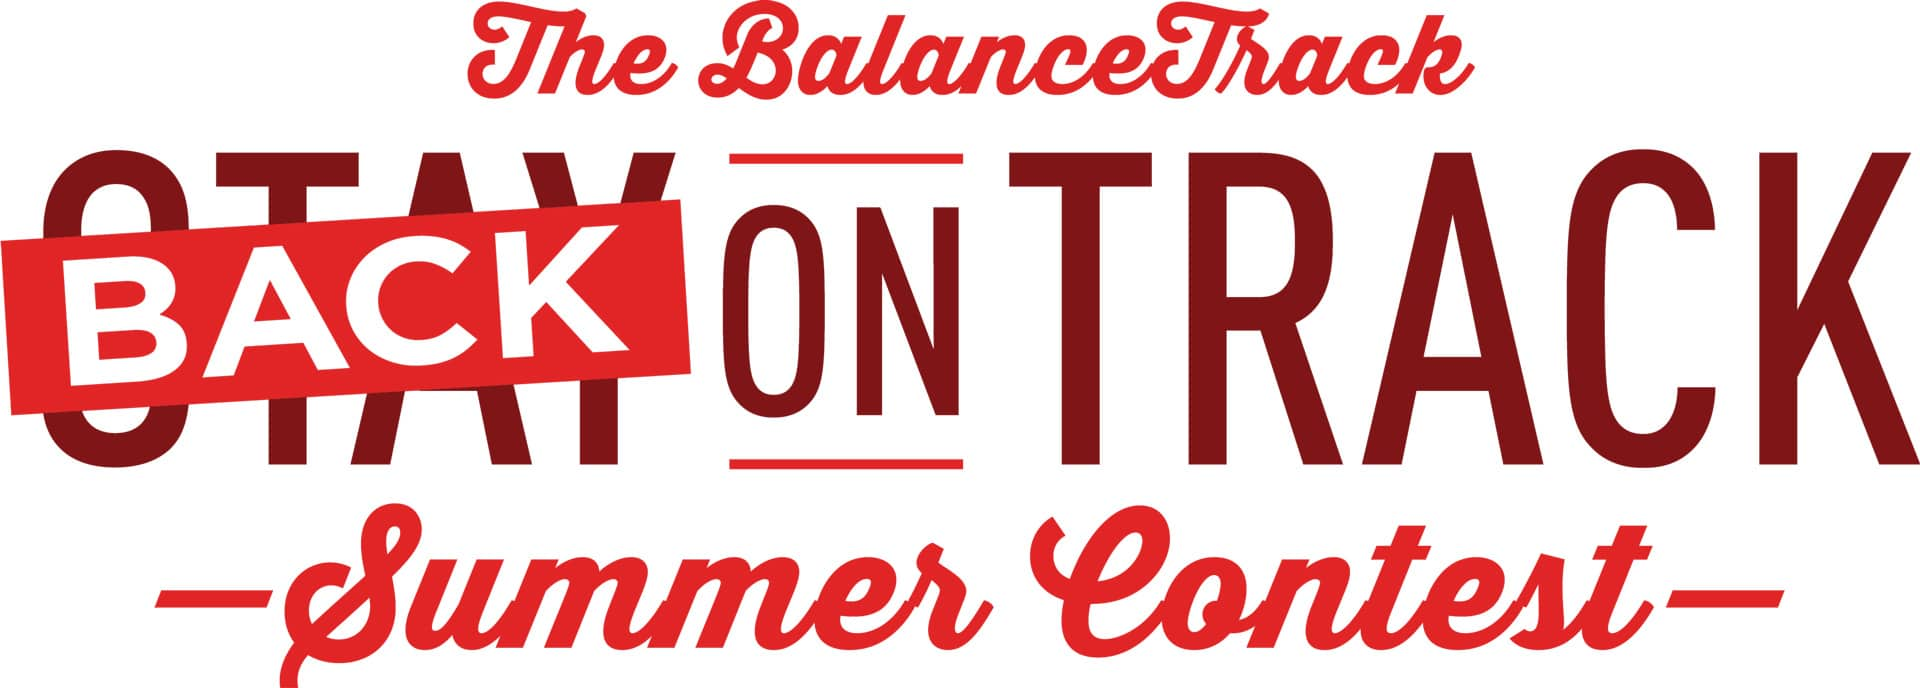 The Balances Track Back on Track Summer Contest